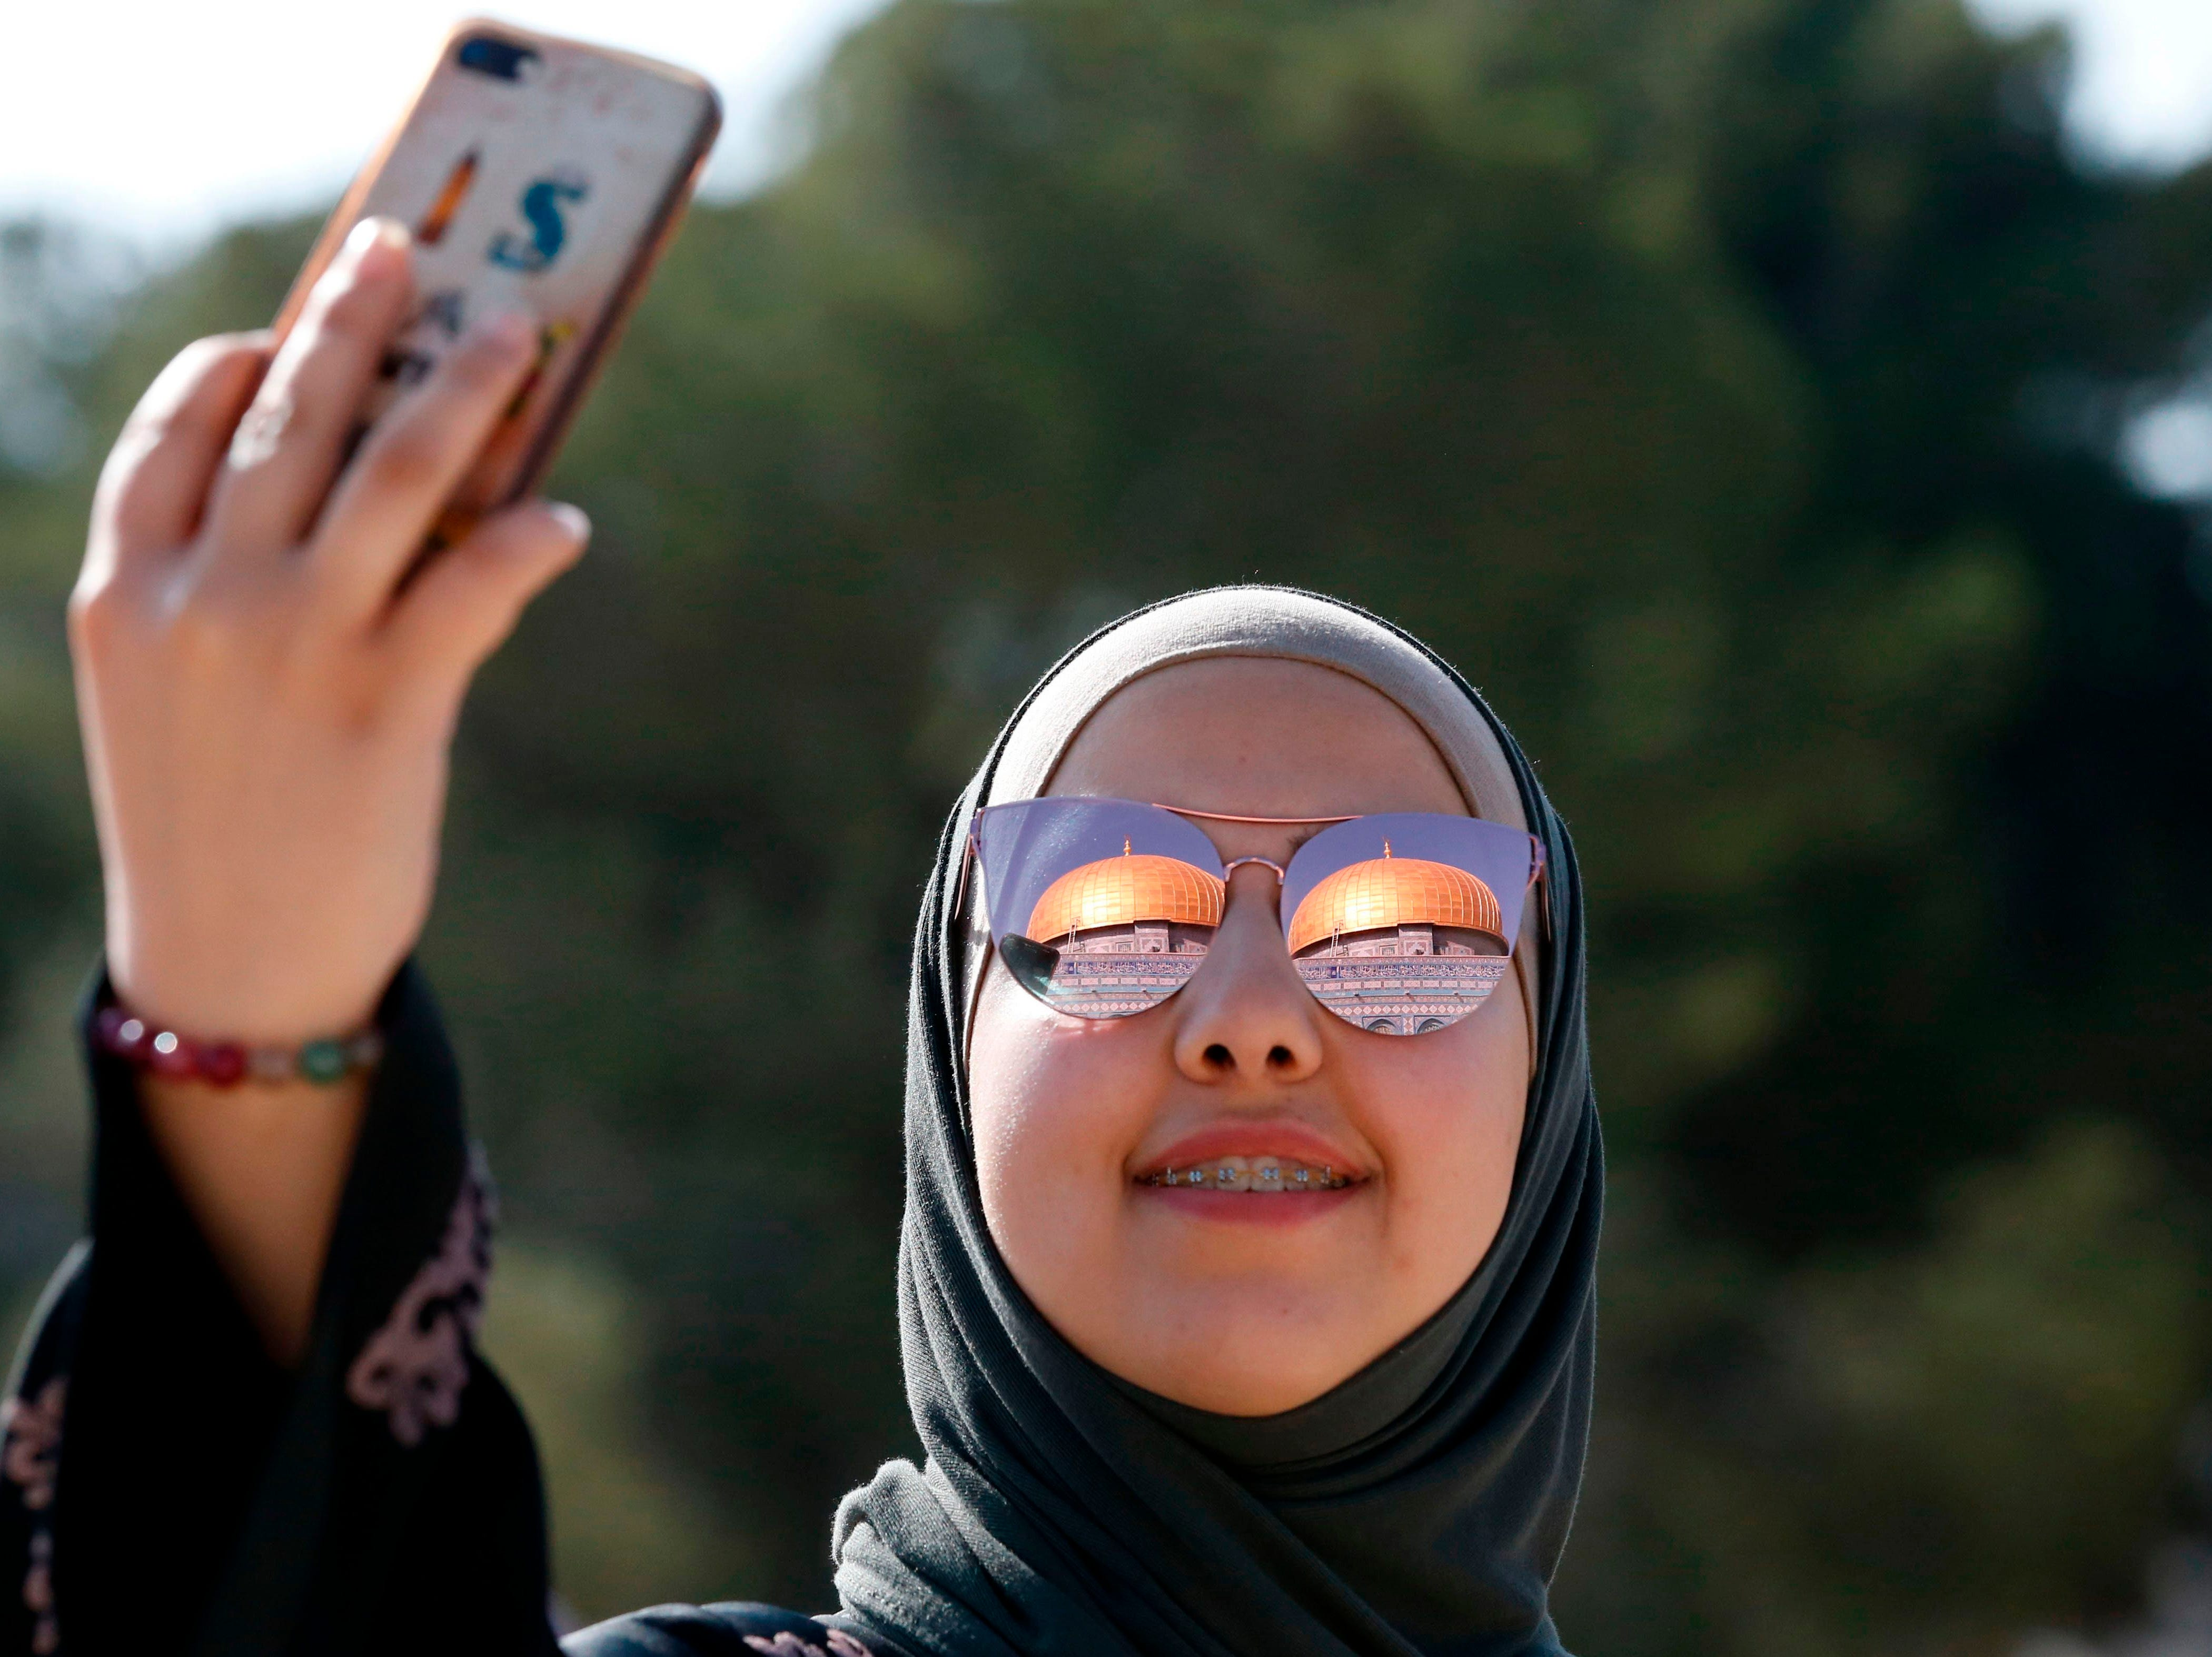 June 8, 2018: A Palestinian woman poses for a selfie in the al-Aqsa mosque compound in Jerusalem's Old City on the last Friday of the Muslim holy month of Ramadan.